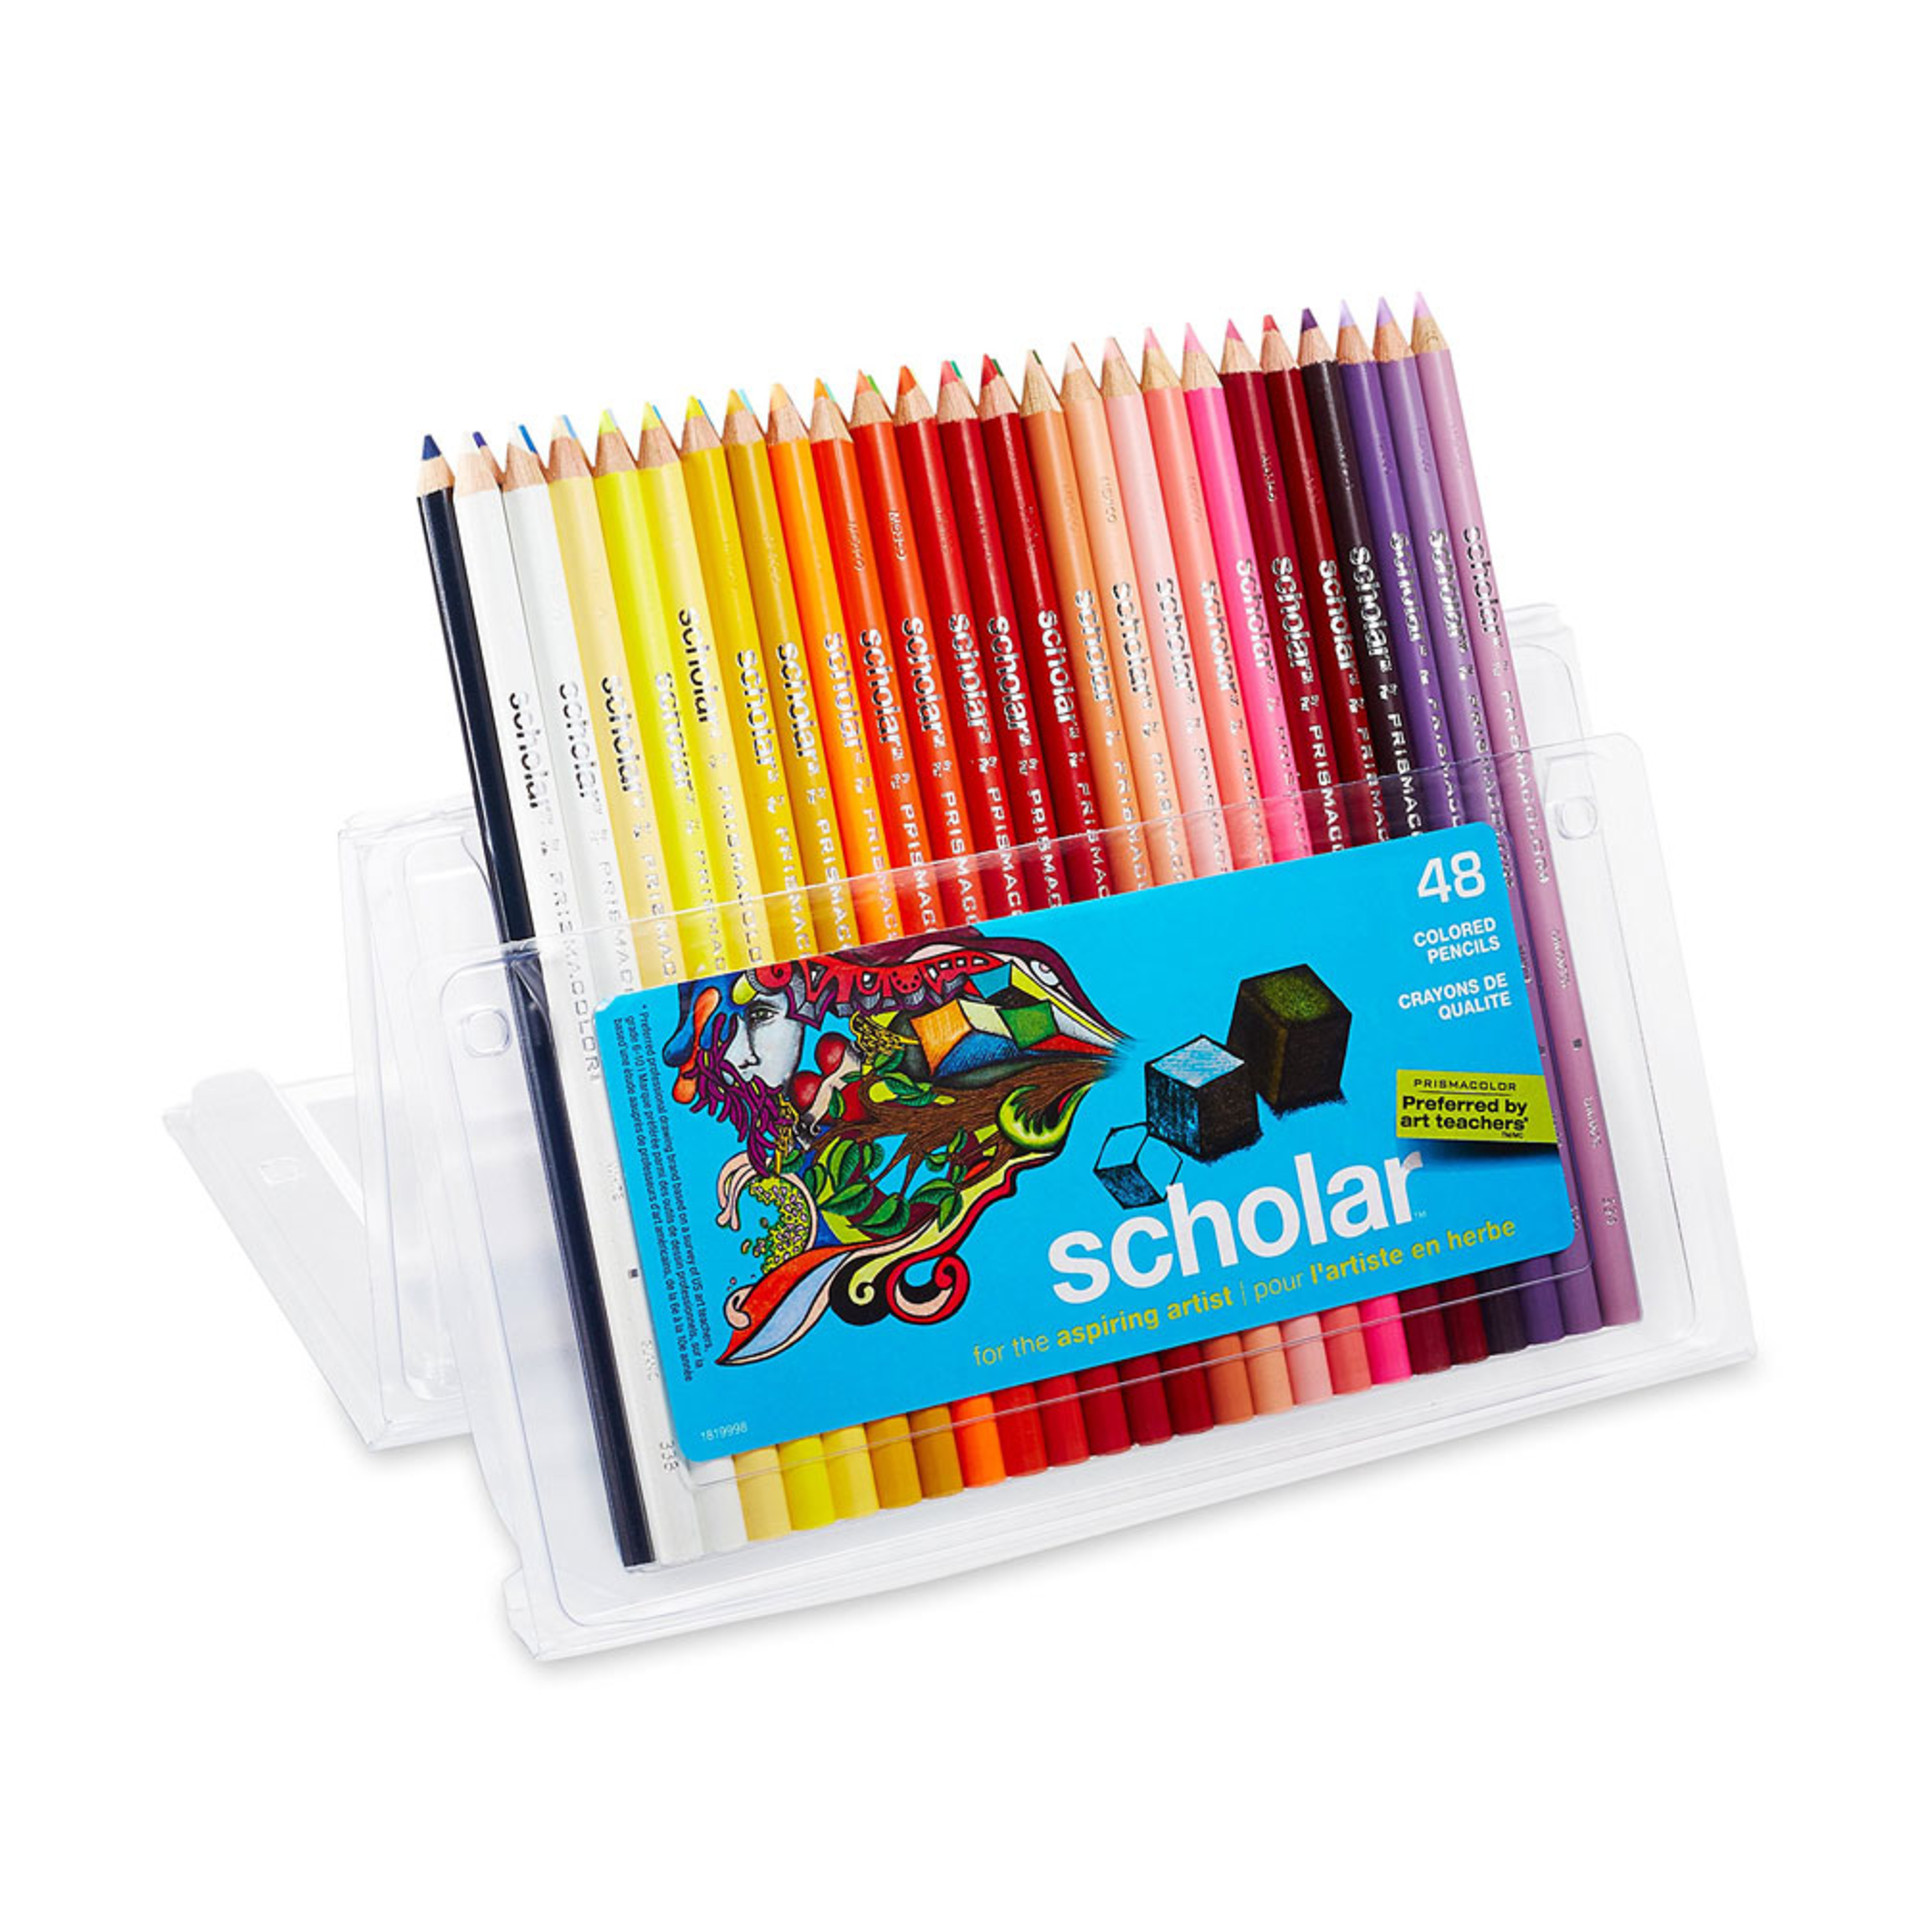 Prismacolor Scholar Colored Pencil Set 48